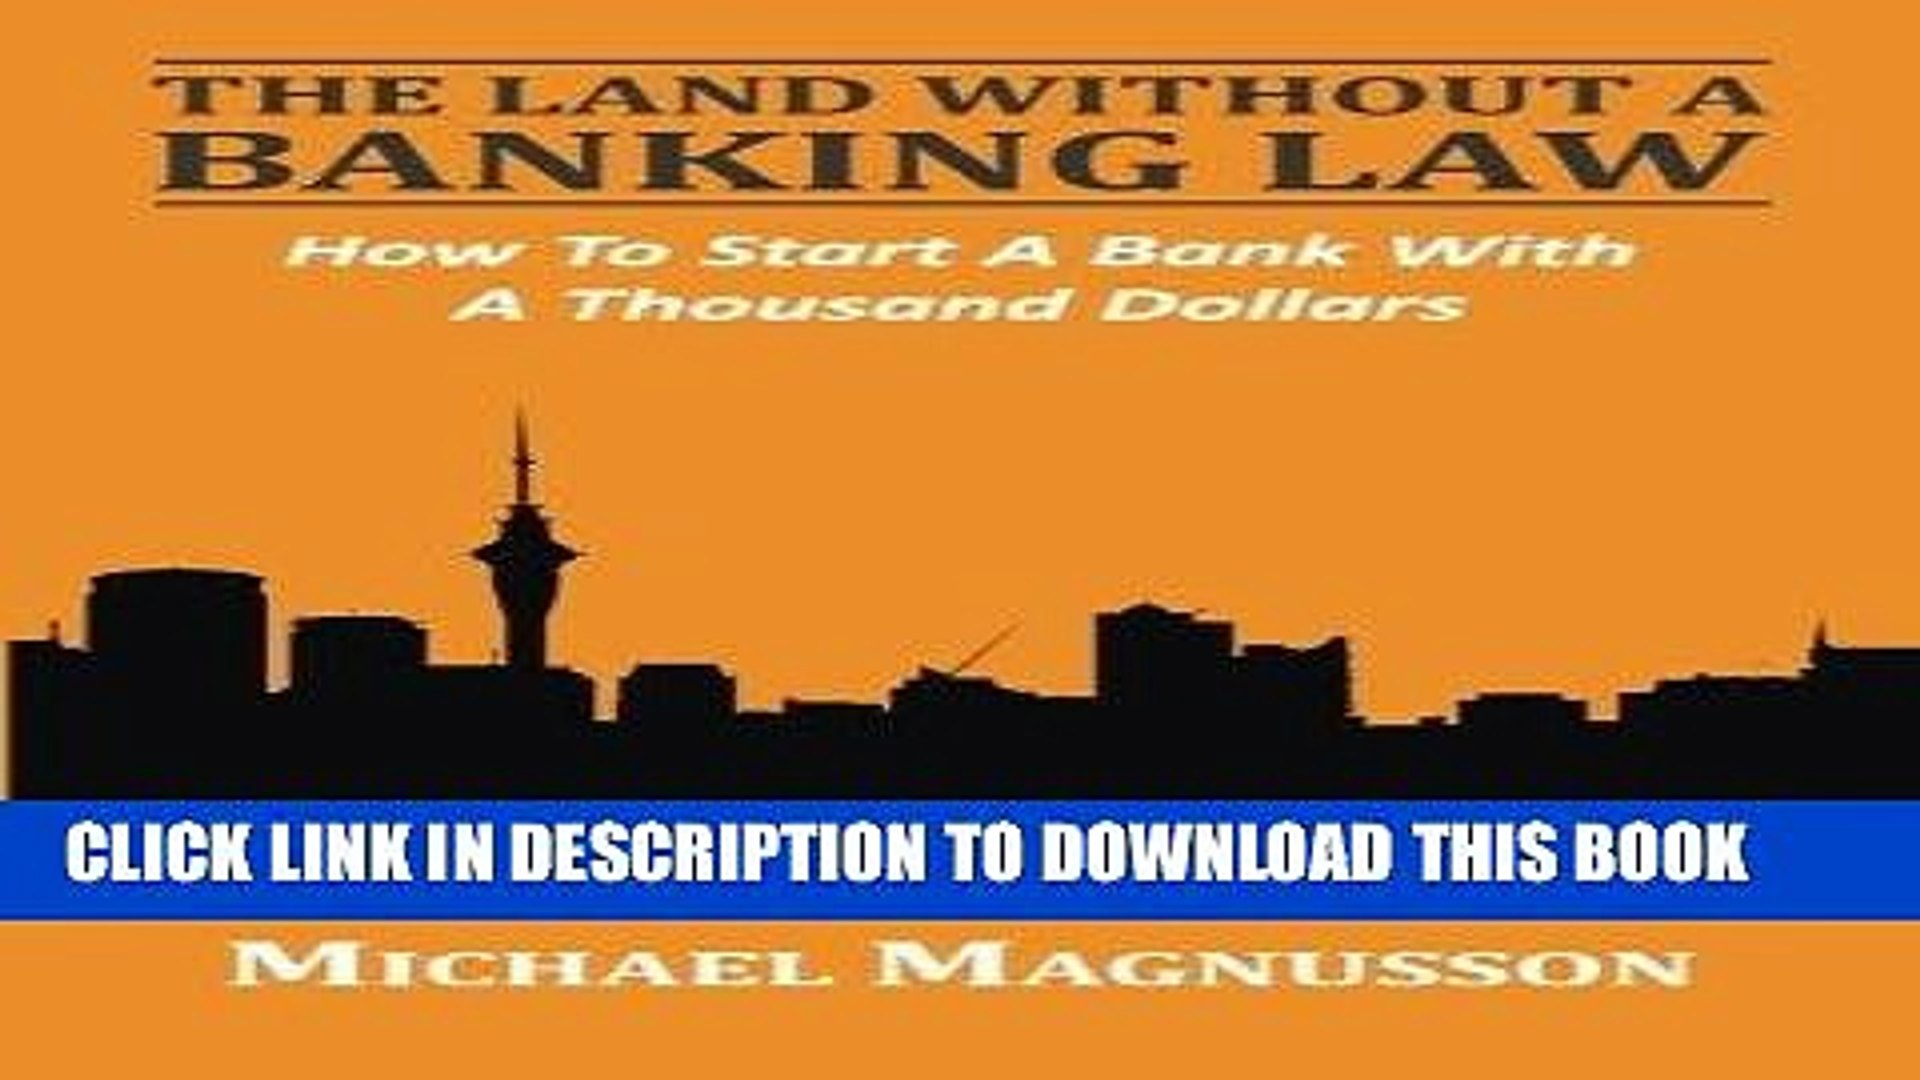 Ebook The Land Without A Banking Law: How To Start A Bank With A Thousand Dollars Free Download